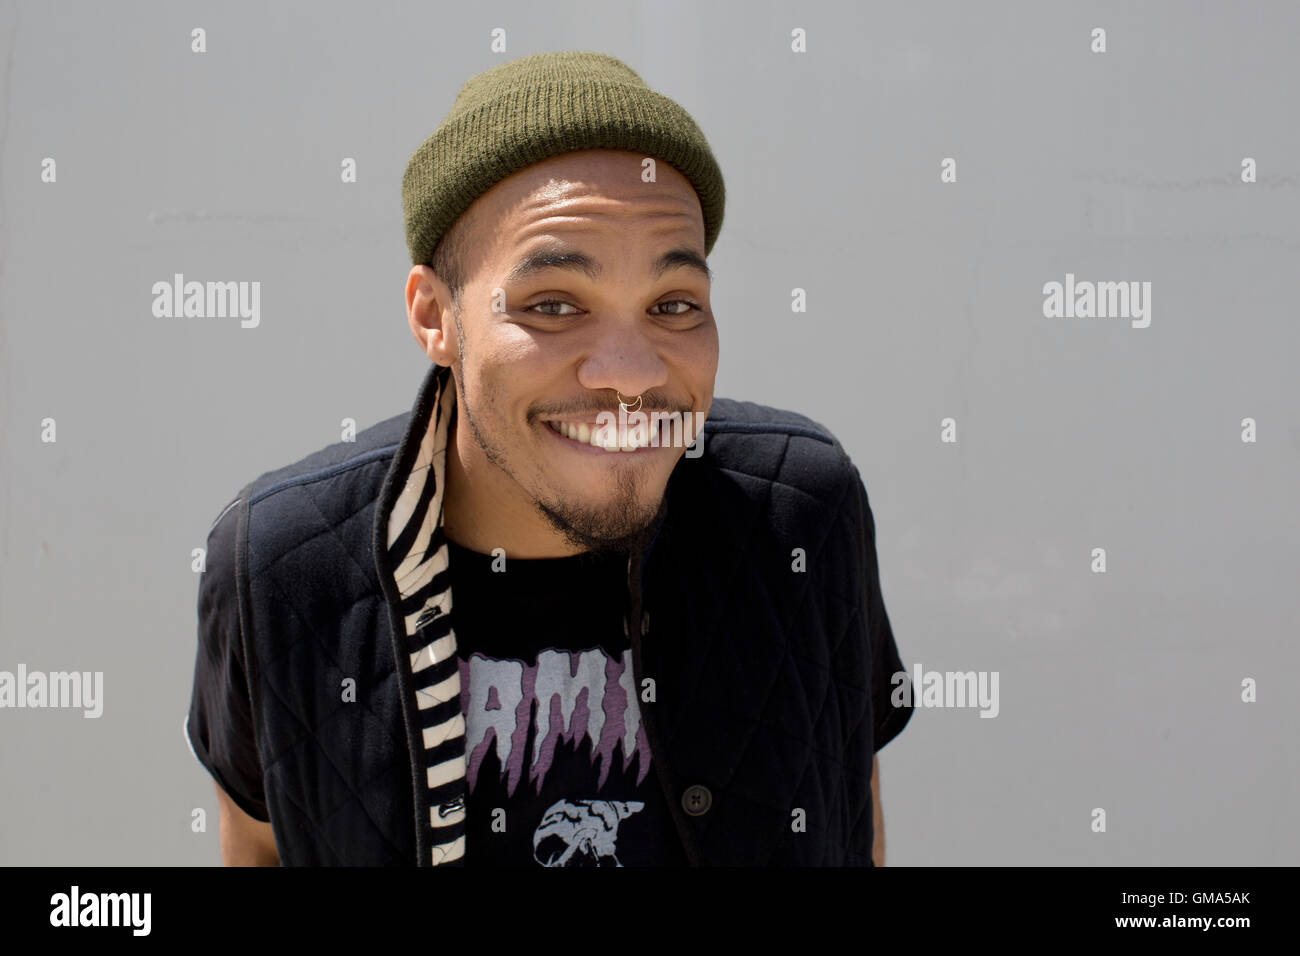 Anderson .Paak poses for portrait session on April 5, 2016 in Los Angeles, California, USA - Stock Image